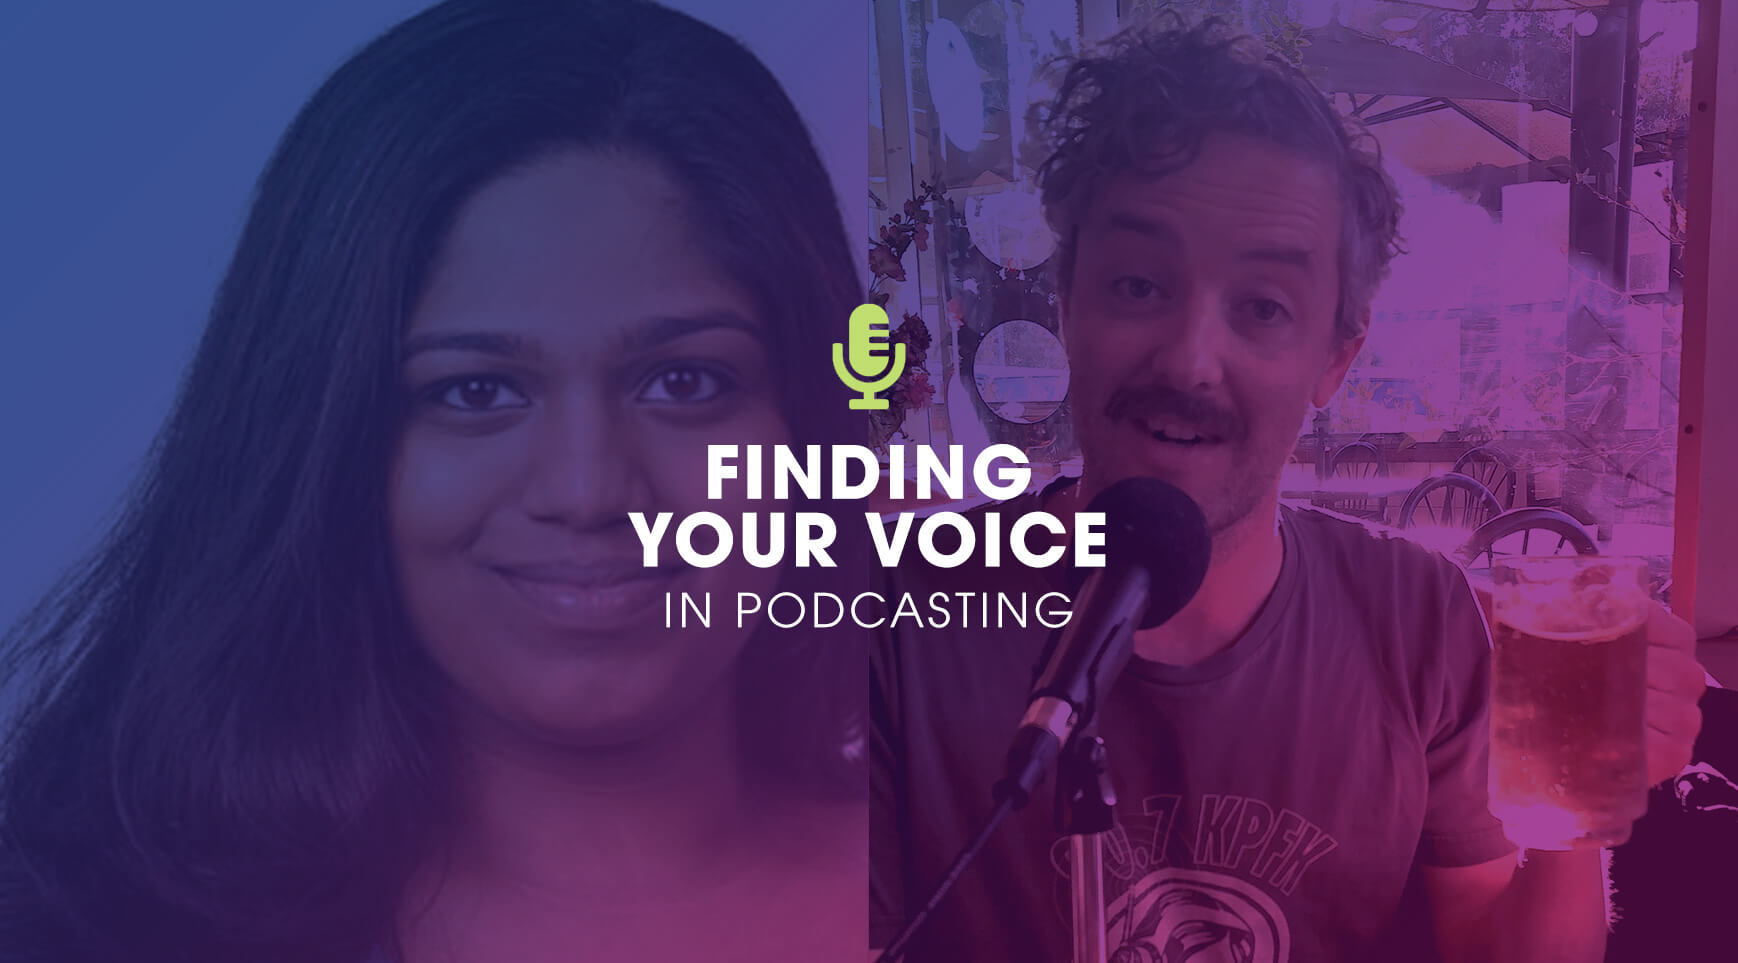 9 Podcasters Explain How They Found Their Voice